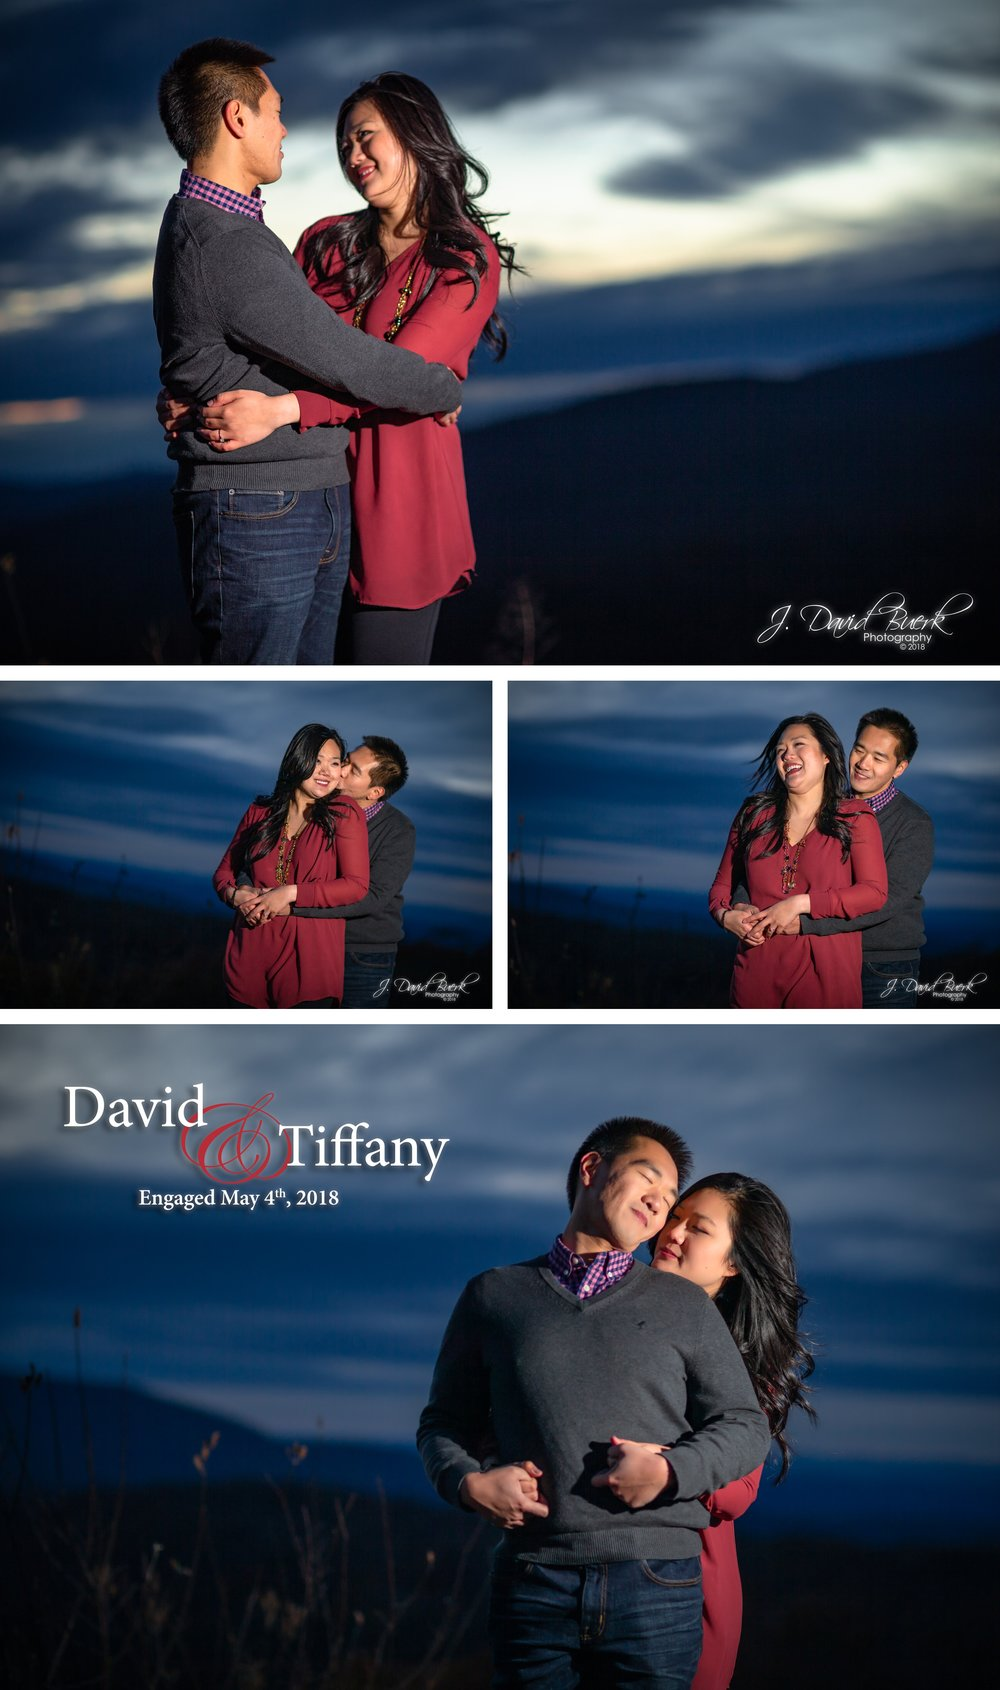 20181104 - David and Tiffany 9.jpg